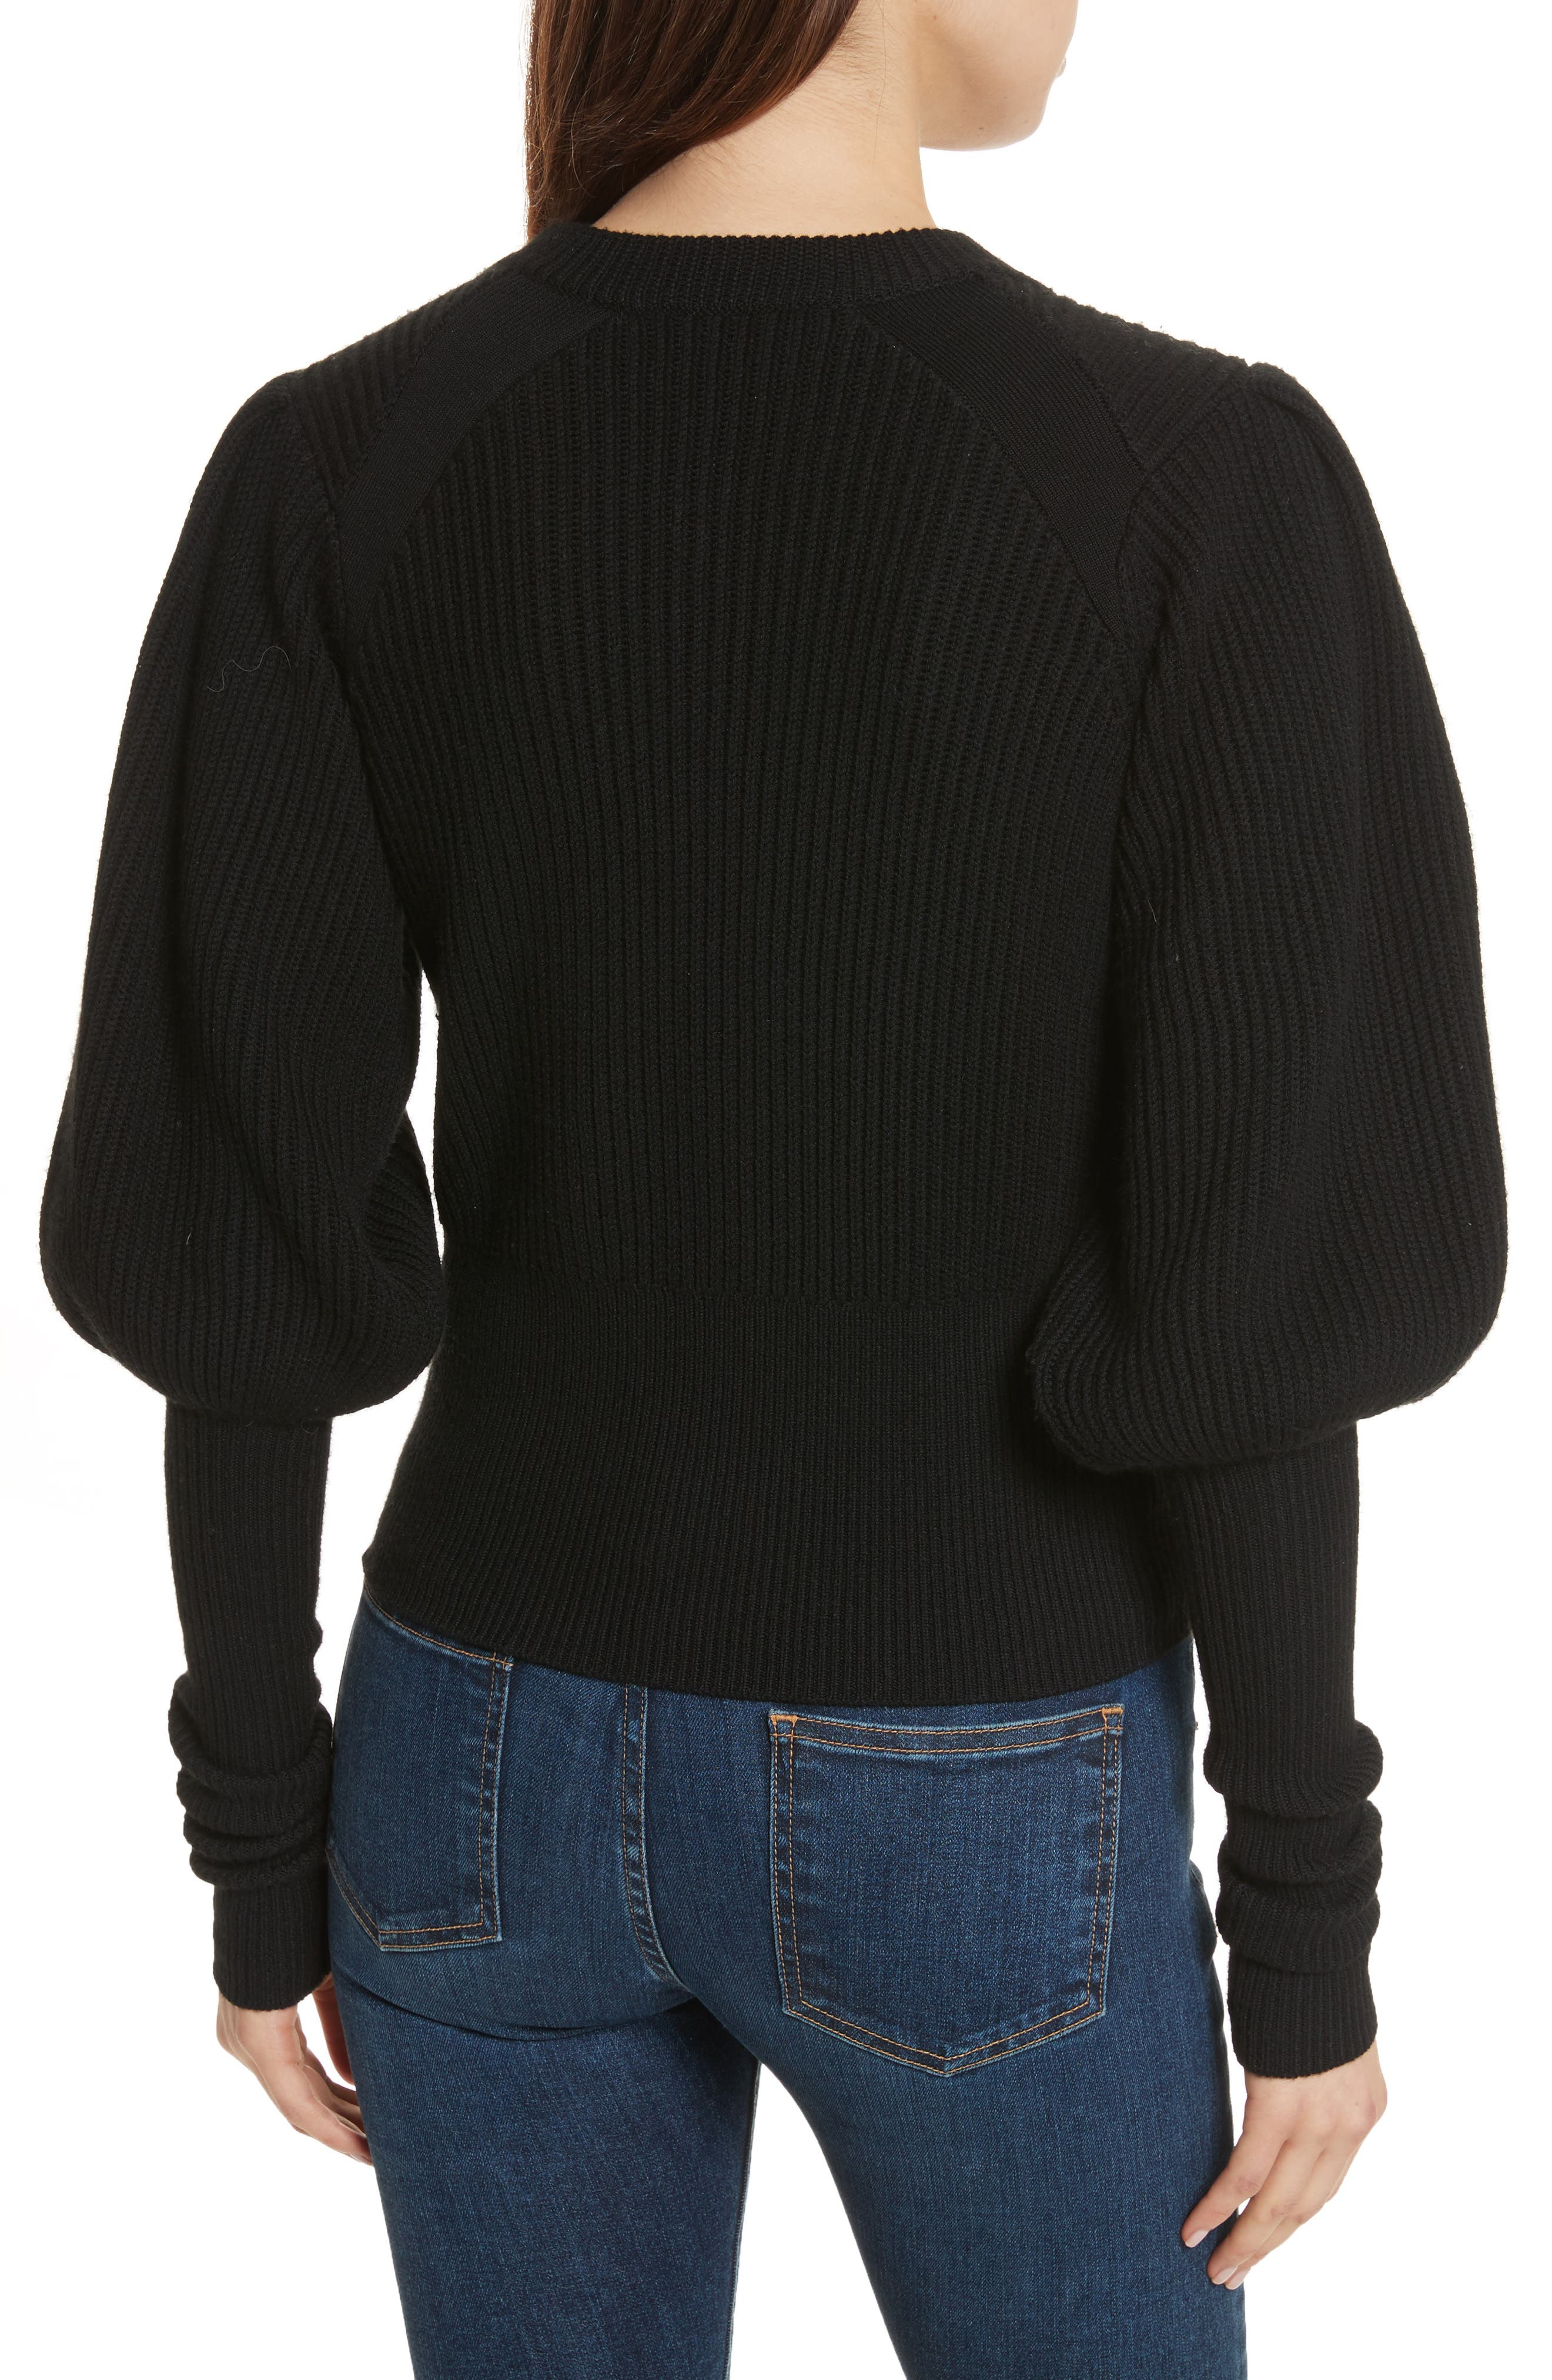 Jude Leg of Mutton Sleeve Sweater,                             Alternate thumbnail 2, color,                             Black